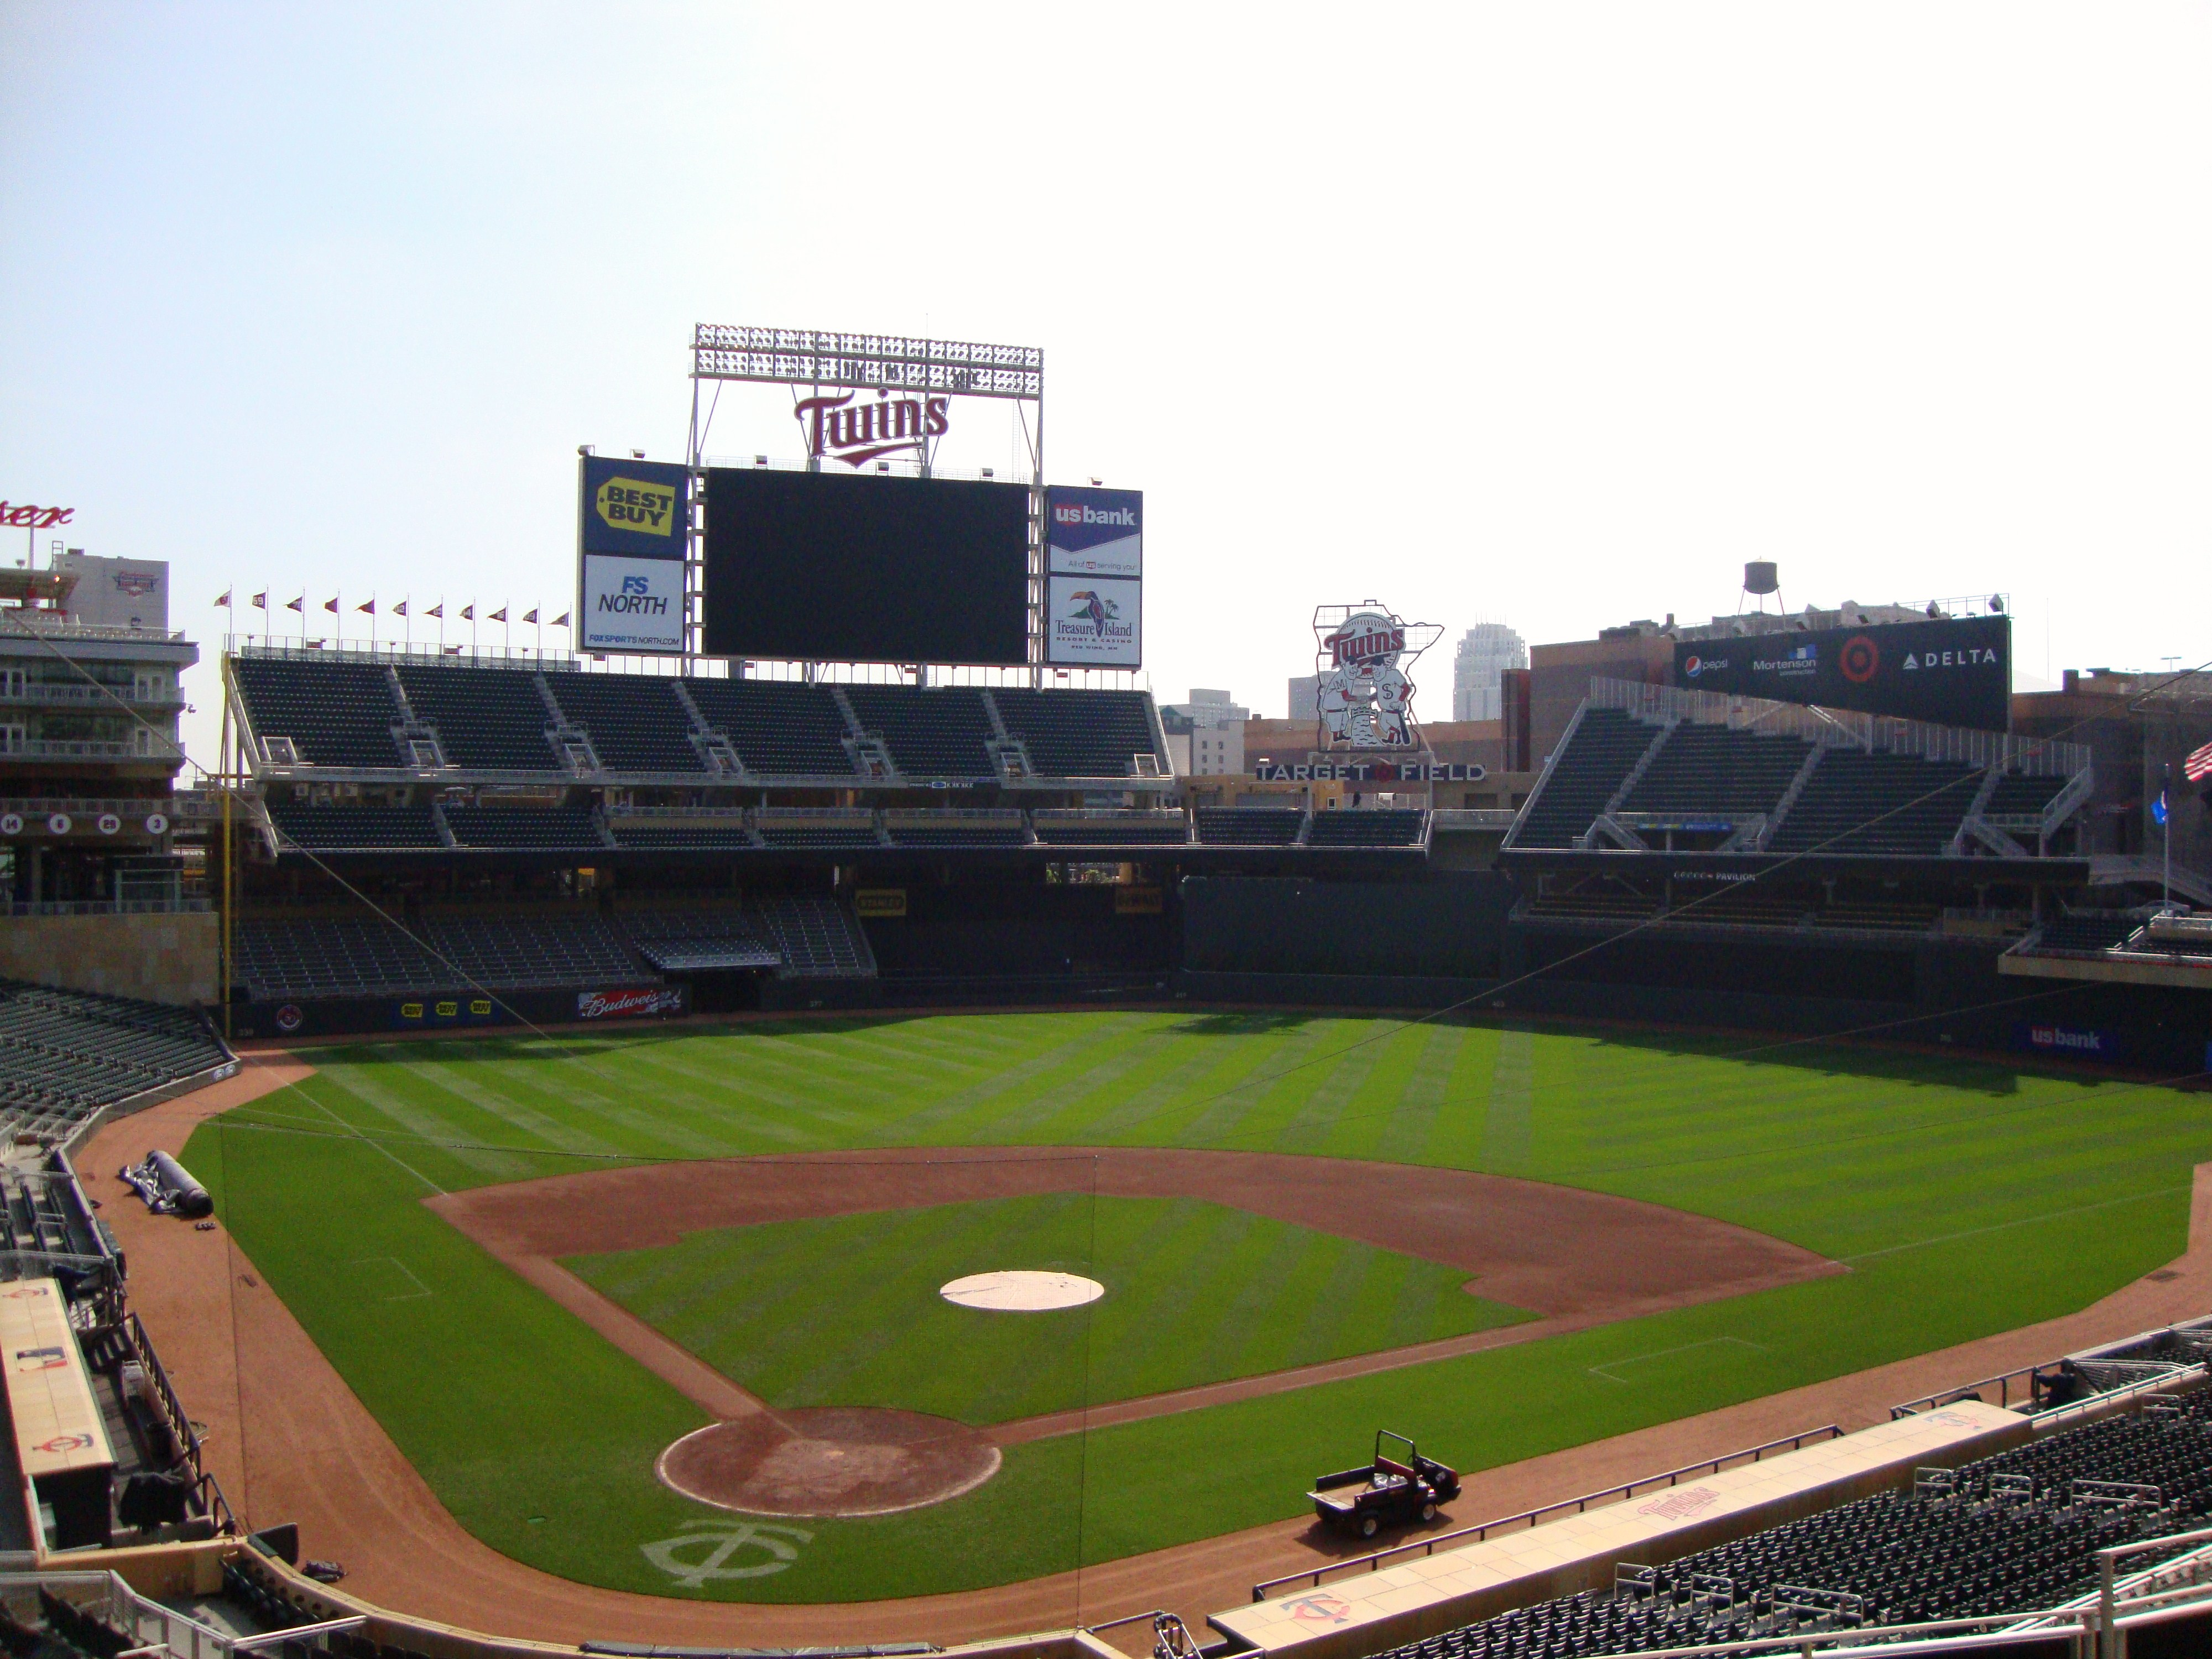 #3 – Target Field – 1 game attended